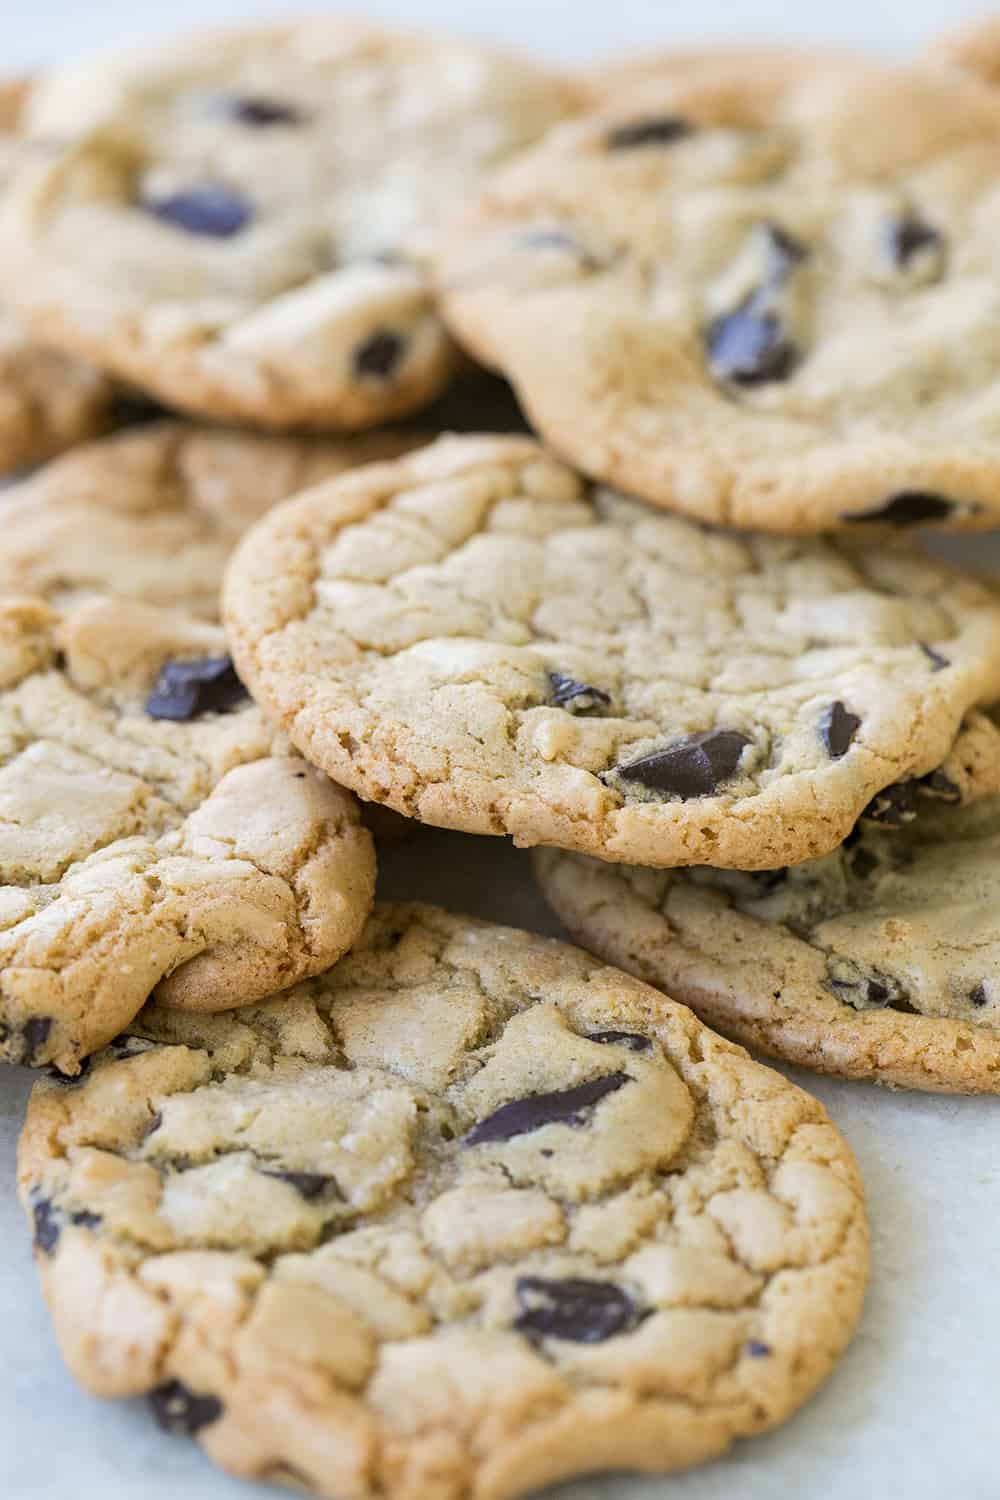 Close up shot of butter-less chocolate chip cookies